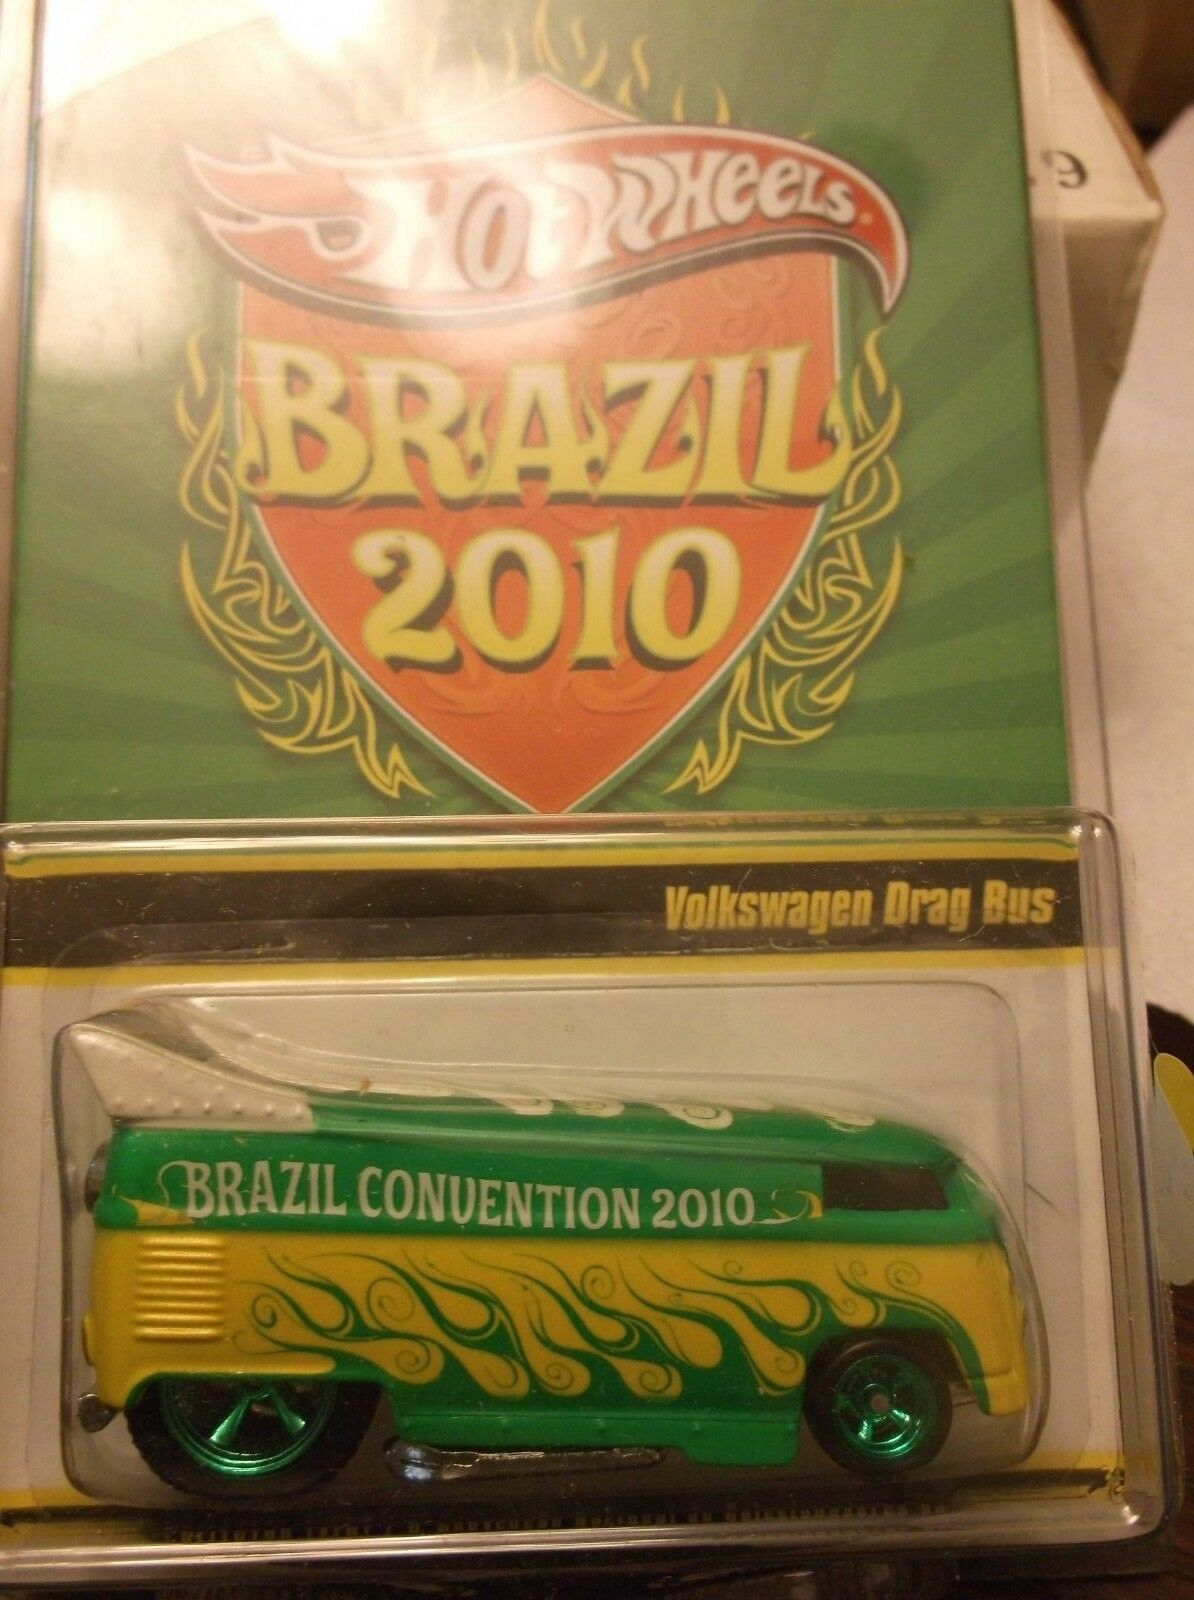 HOT WHEELS BRAZIL 2010 VOLKSWAGON DRAG BUS